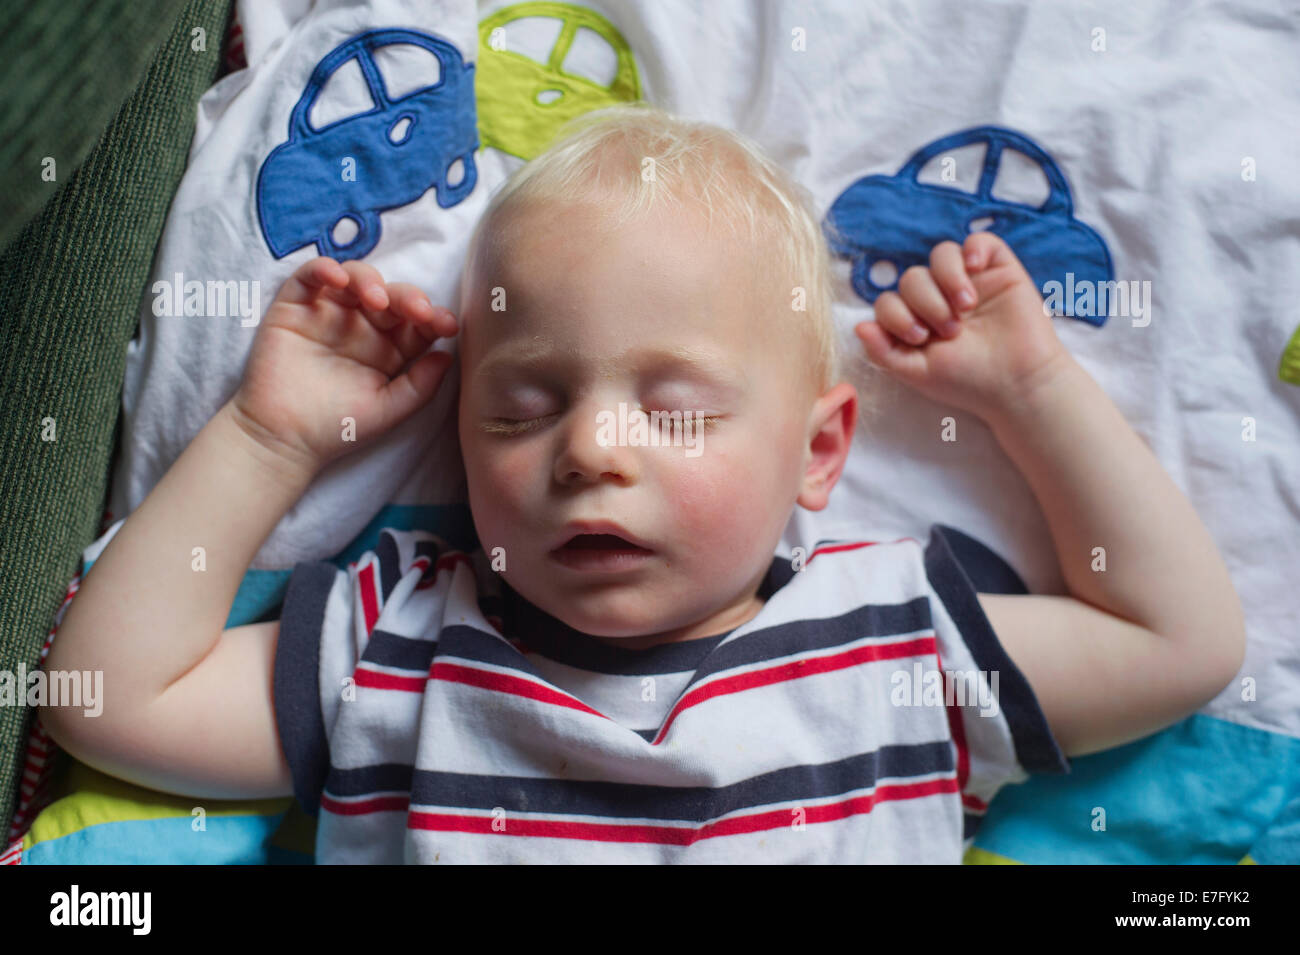 A sleeping child at two years old - Stock Image